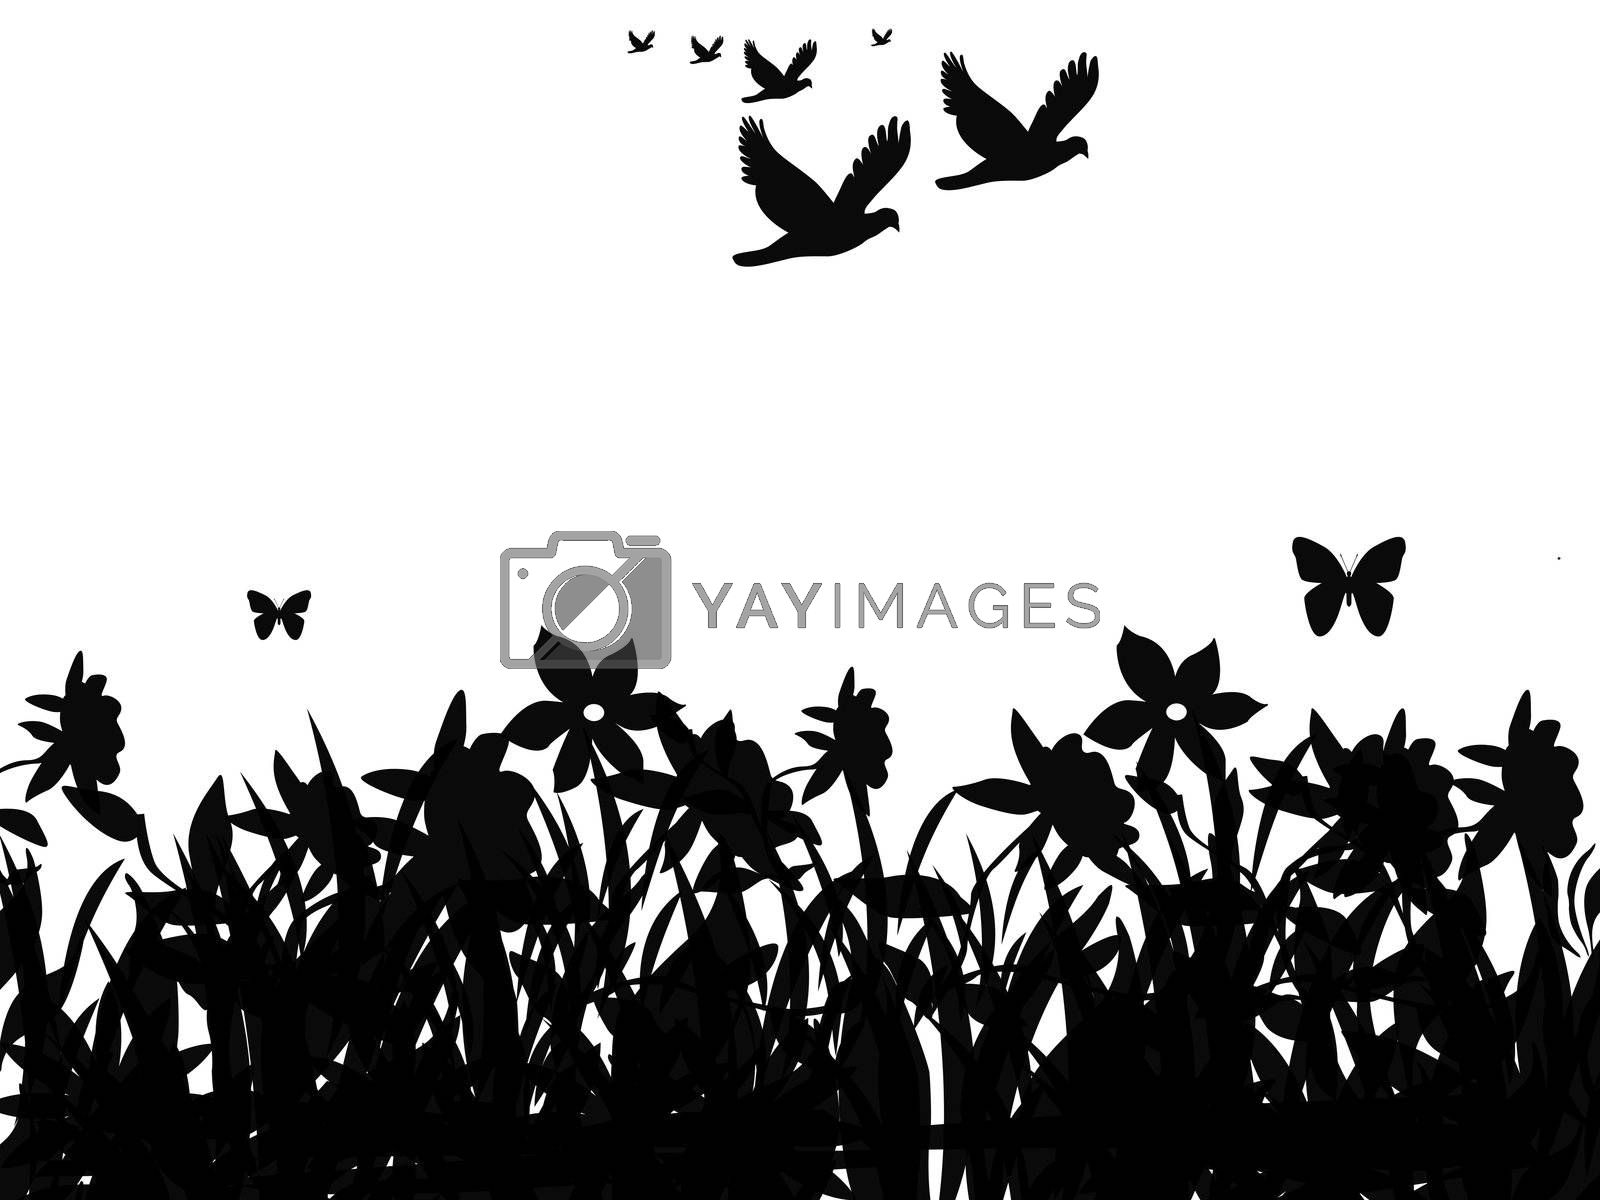 Silhouette of butterflies and flock of birds flying over field of flowers.